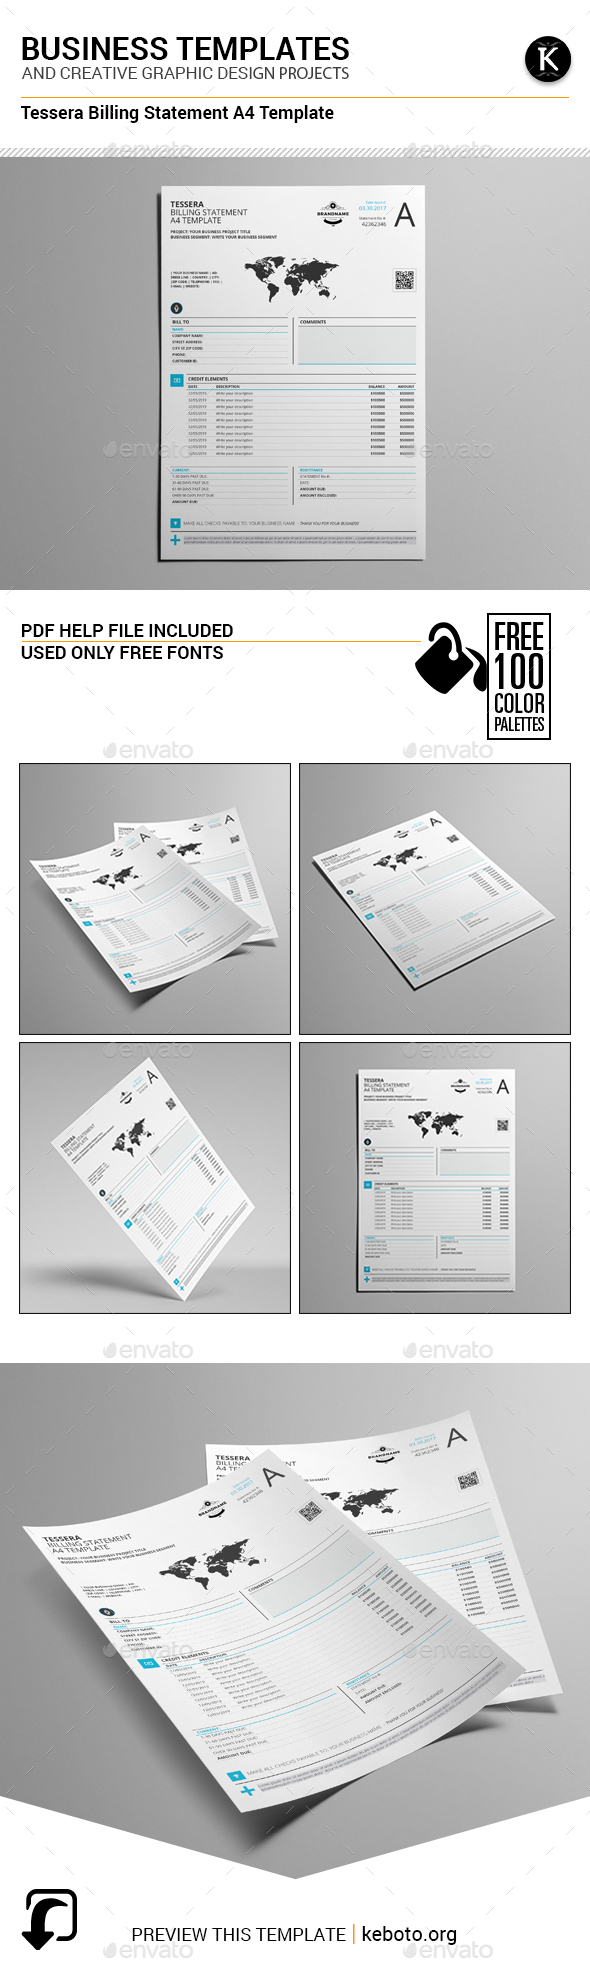 Tessera Billing Statement A4 Template - Miscellaneous Print Templates